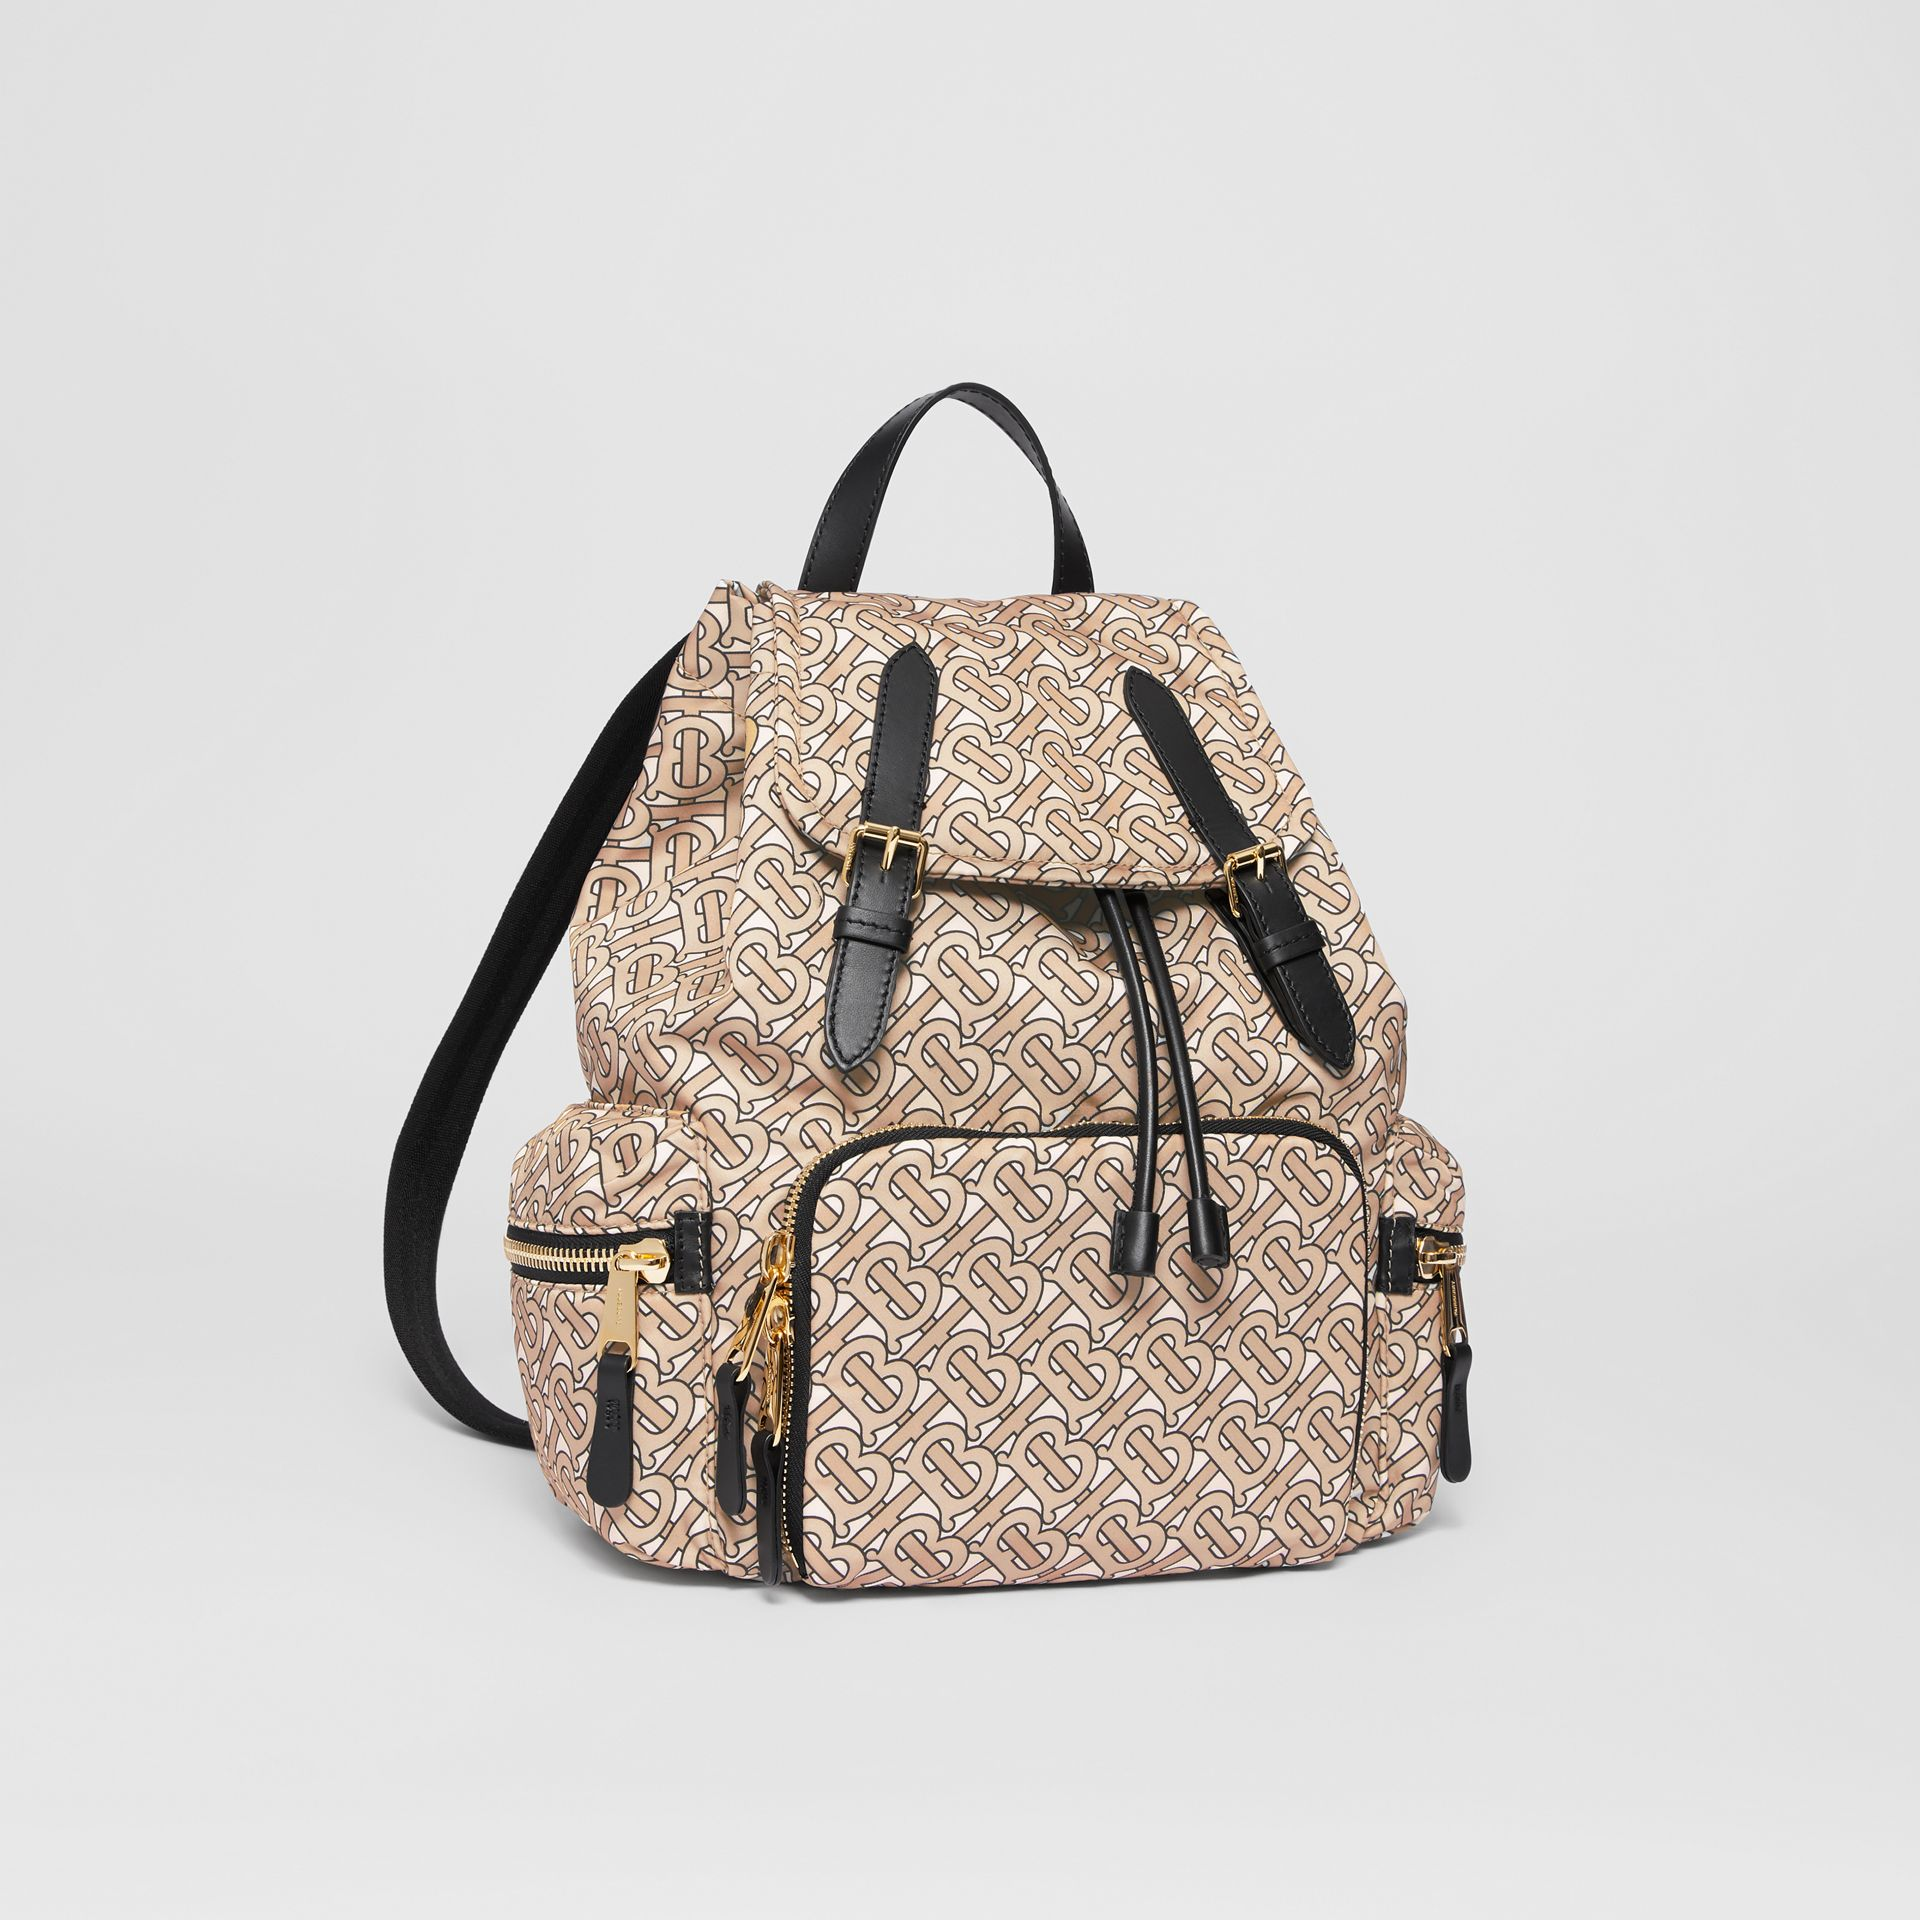 Sac The Rucksack moyen en nylon Monogram (Beige) - Femme | Burberry Canada - photo de la galerie 6